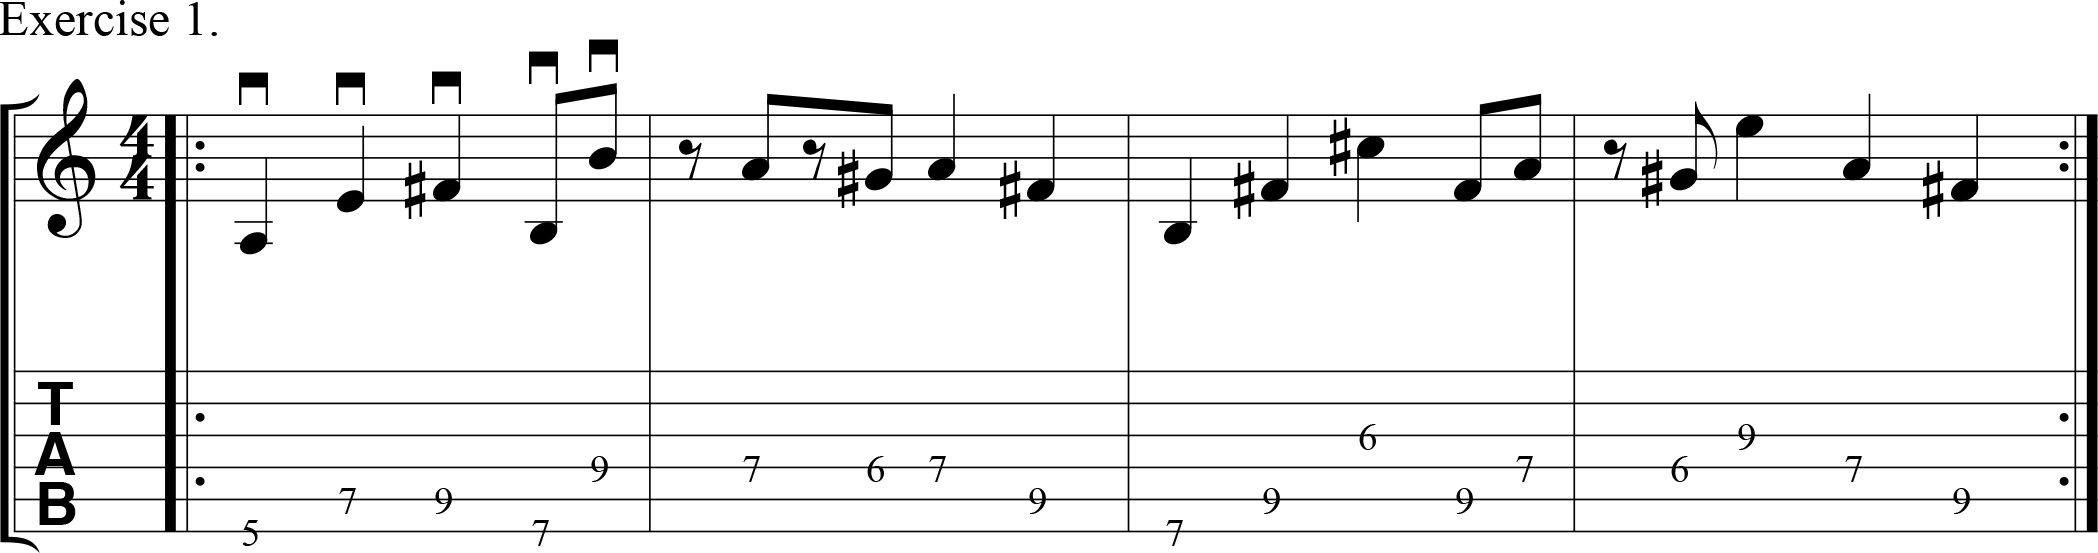 Downpicking exercise in a contemporary musical style.